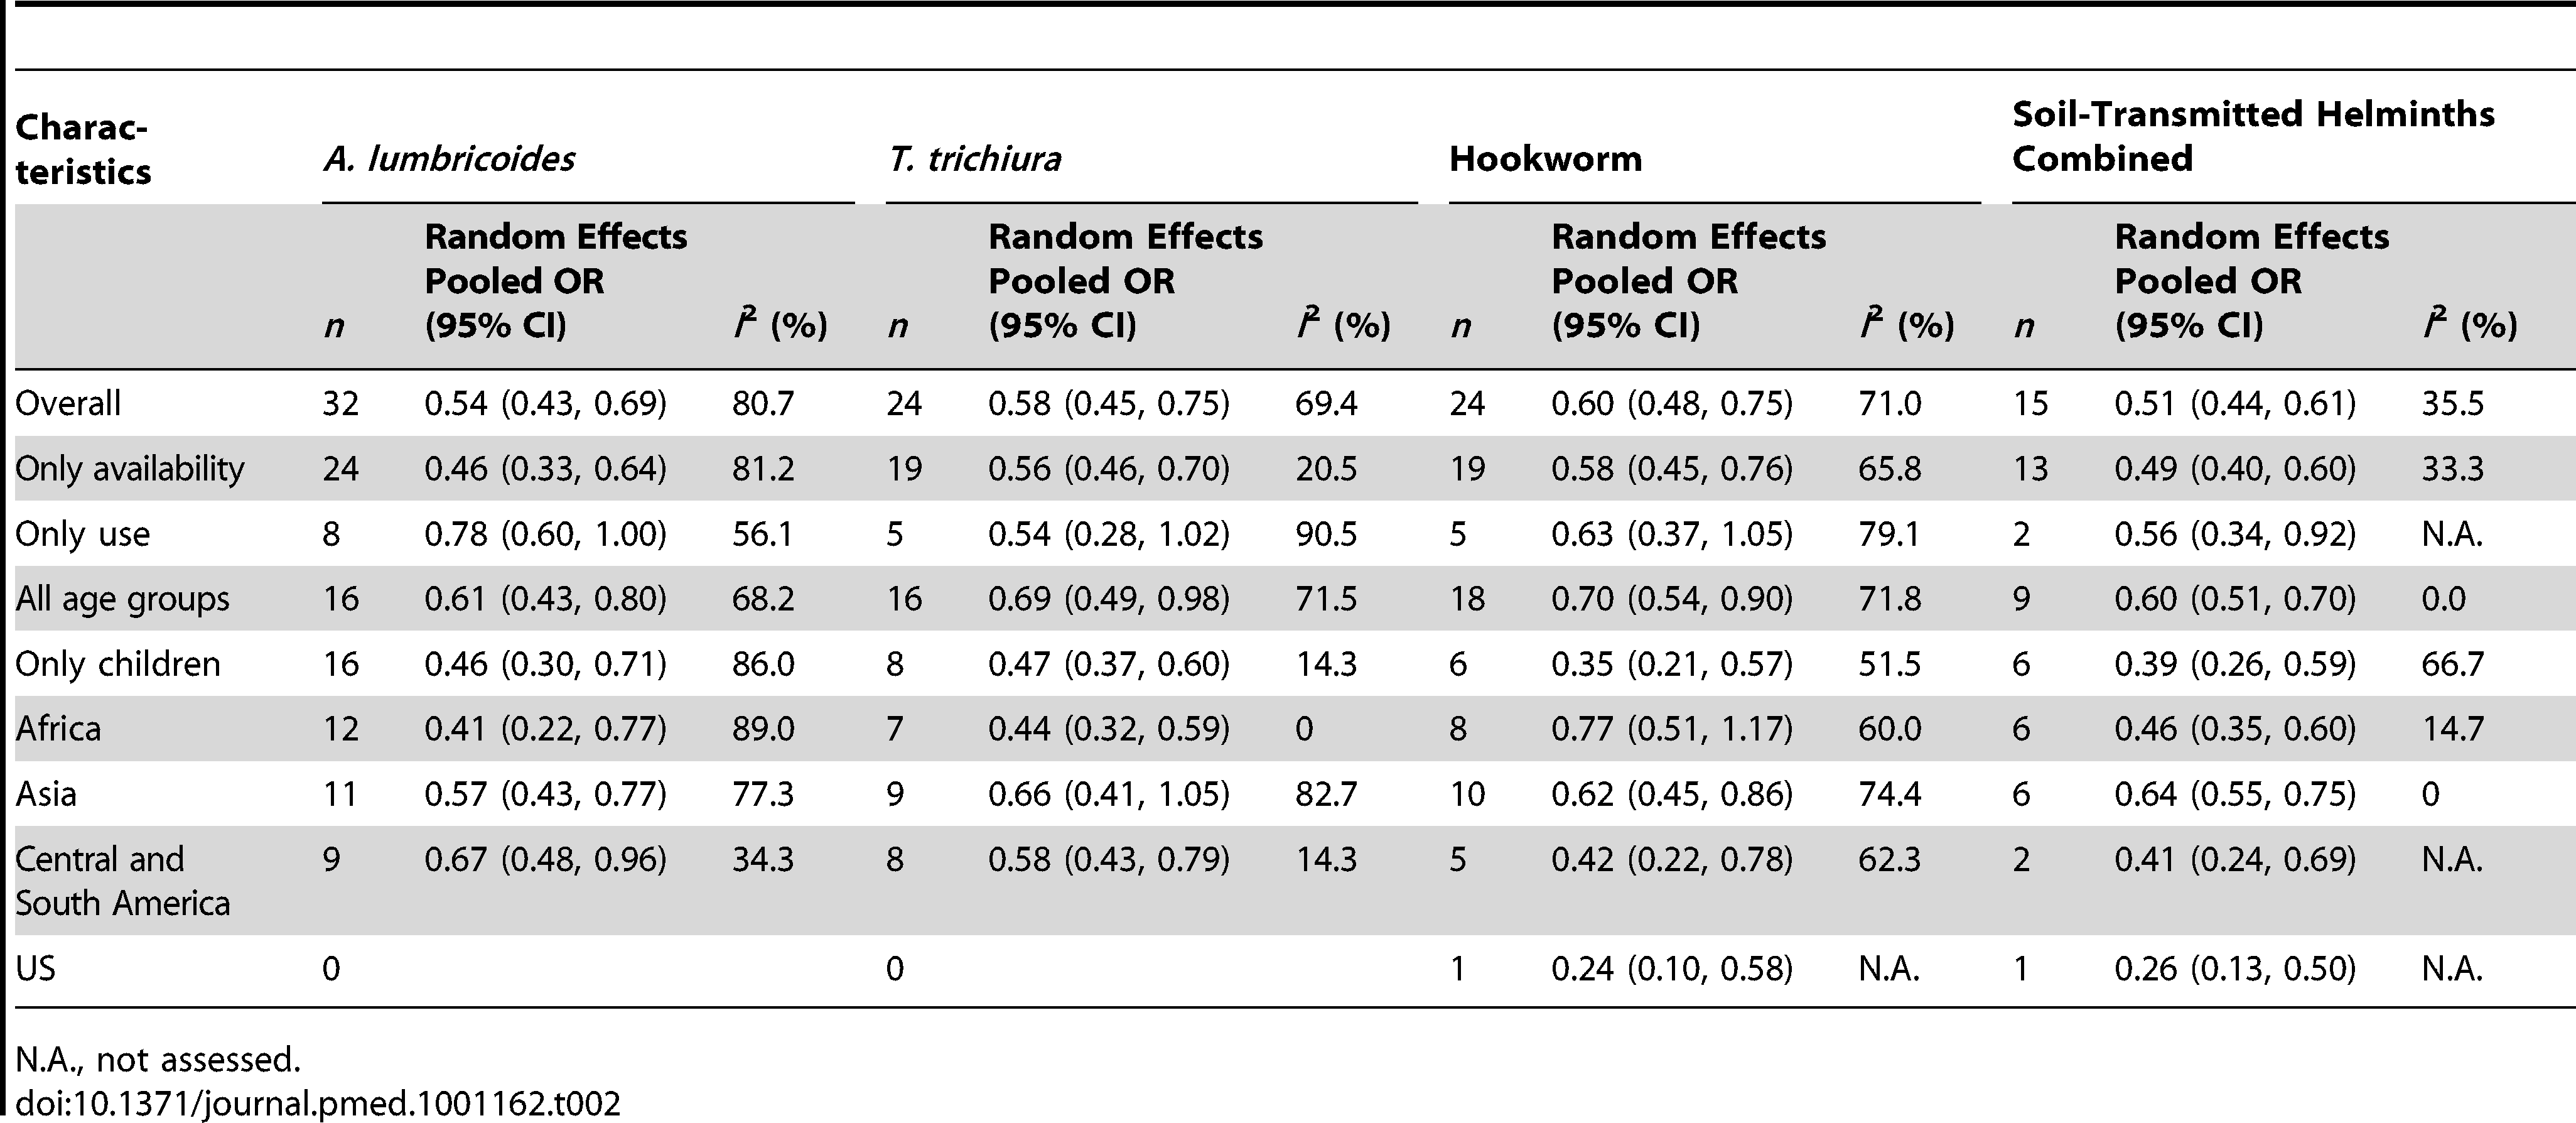 Summary results of sub-group analysis examining the association of sanitation with soil-transmitted helminth infections.